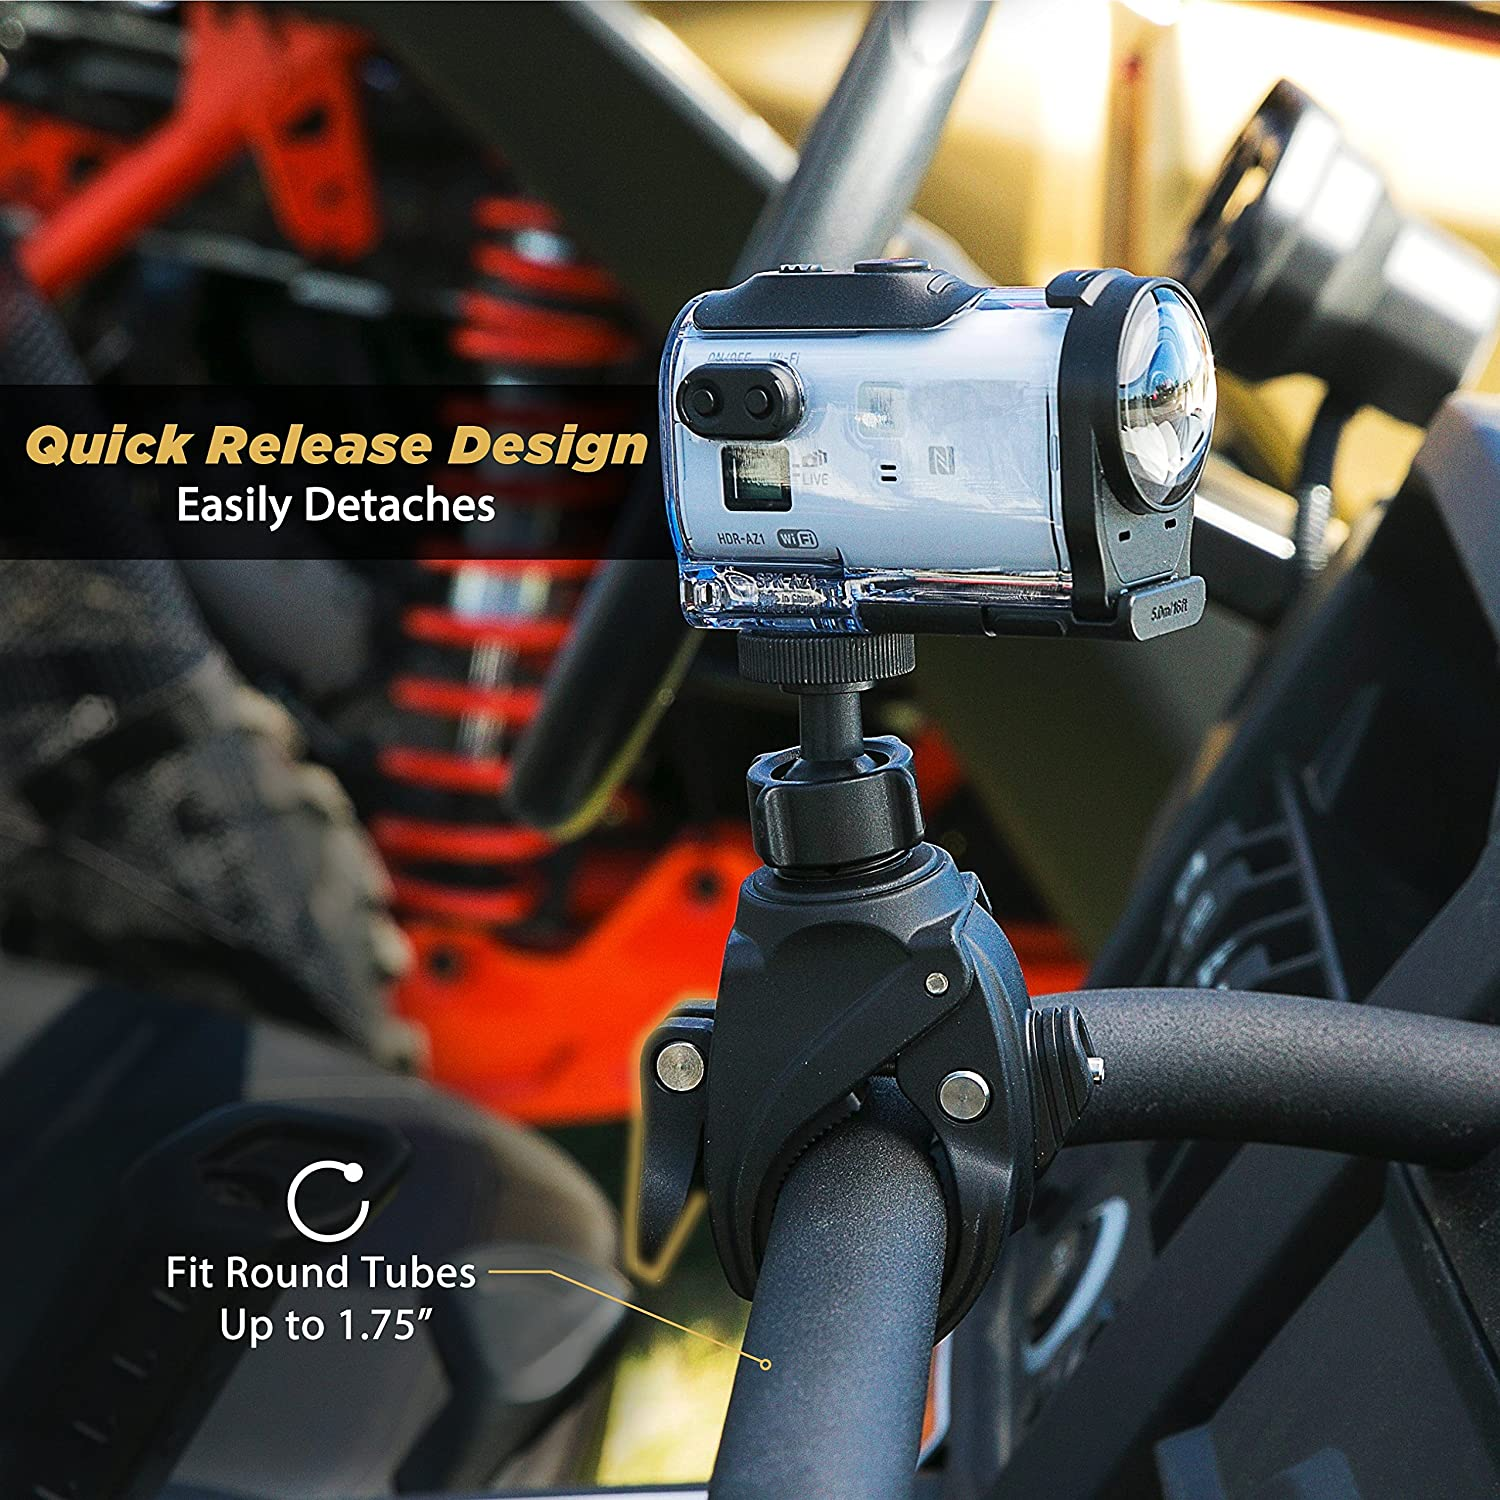 Protective Safety Bands and Adjustable Clamp for Mobile Devices SCOSCHE MBM3SM-RP Handlebar Bike Phone Mount with Integrated MagicMount